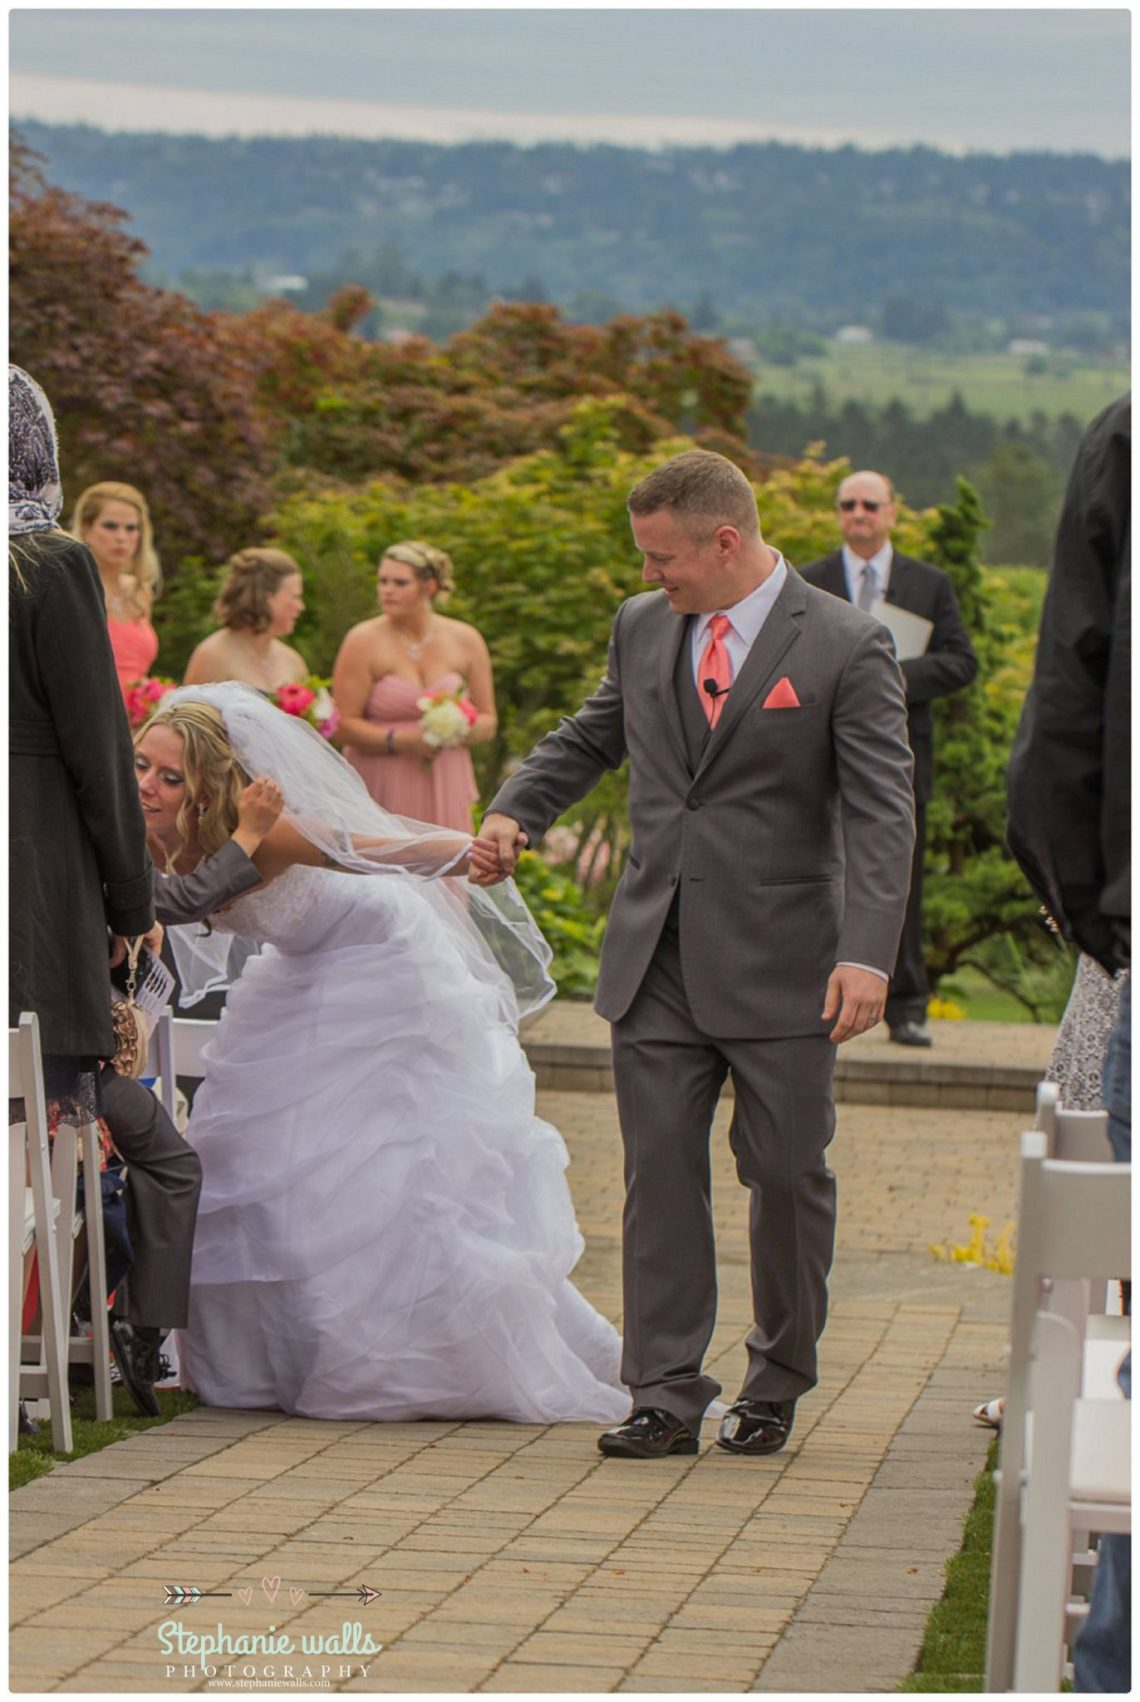 Baker Wedding 221 Blending Beats Together | Olympic View Estates Snohomish WA